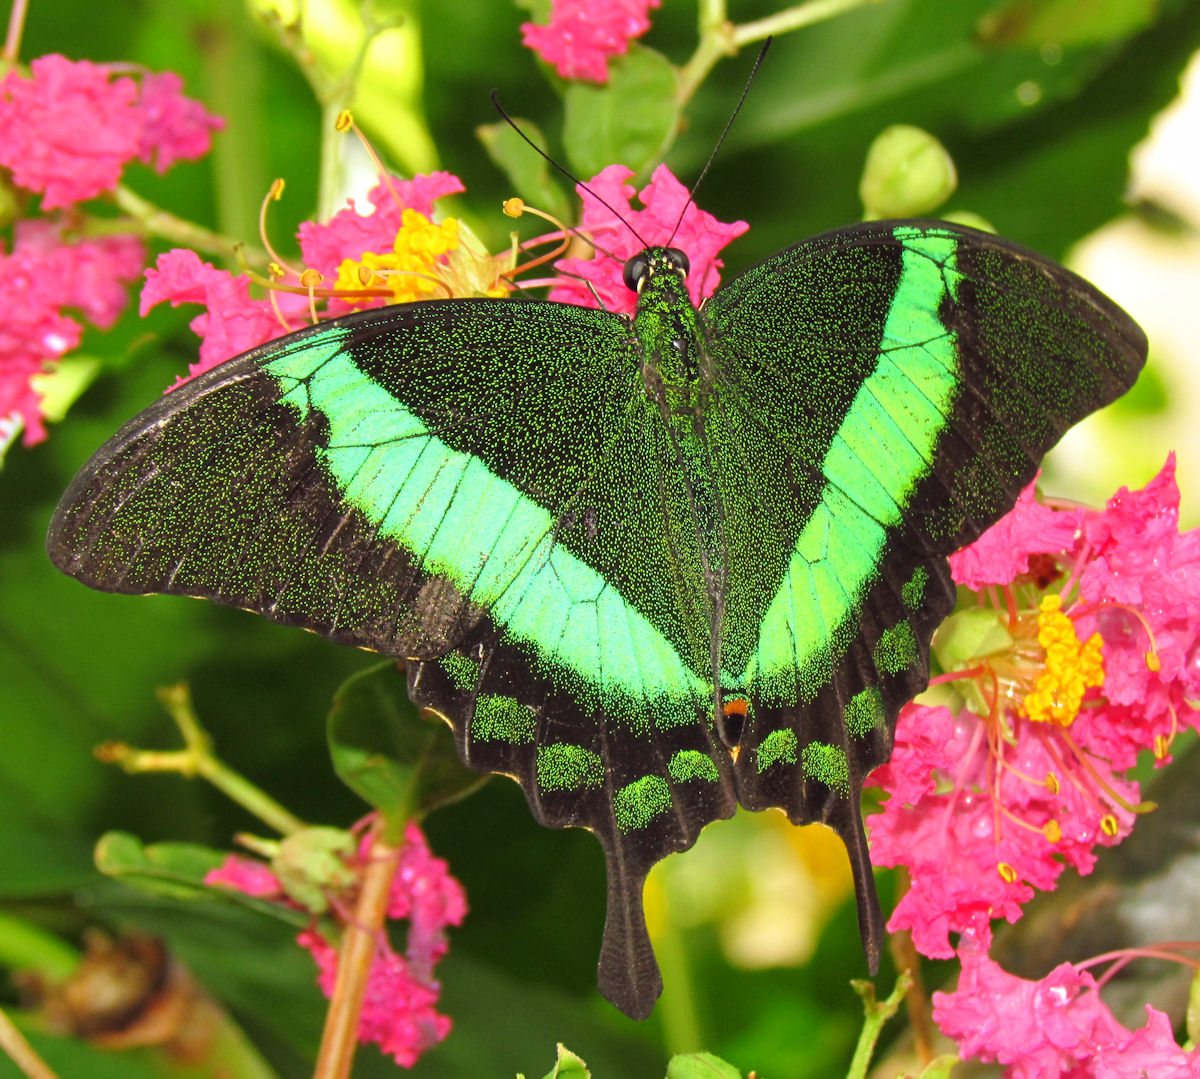 Emerald Swallowtail butterfly